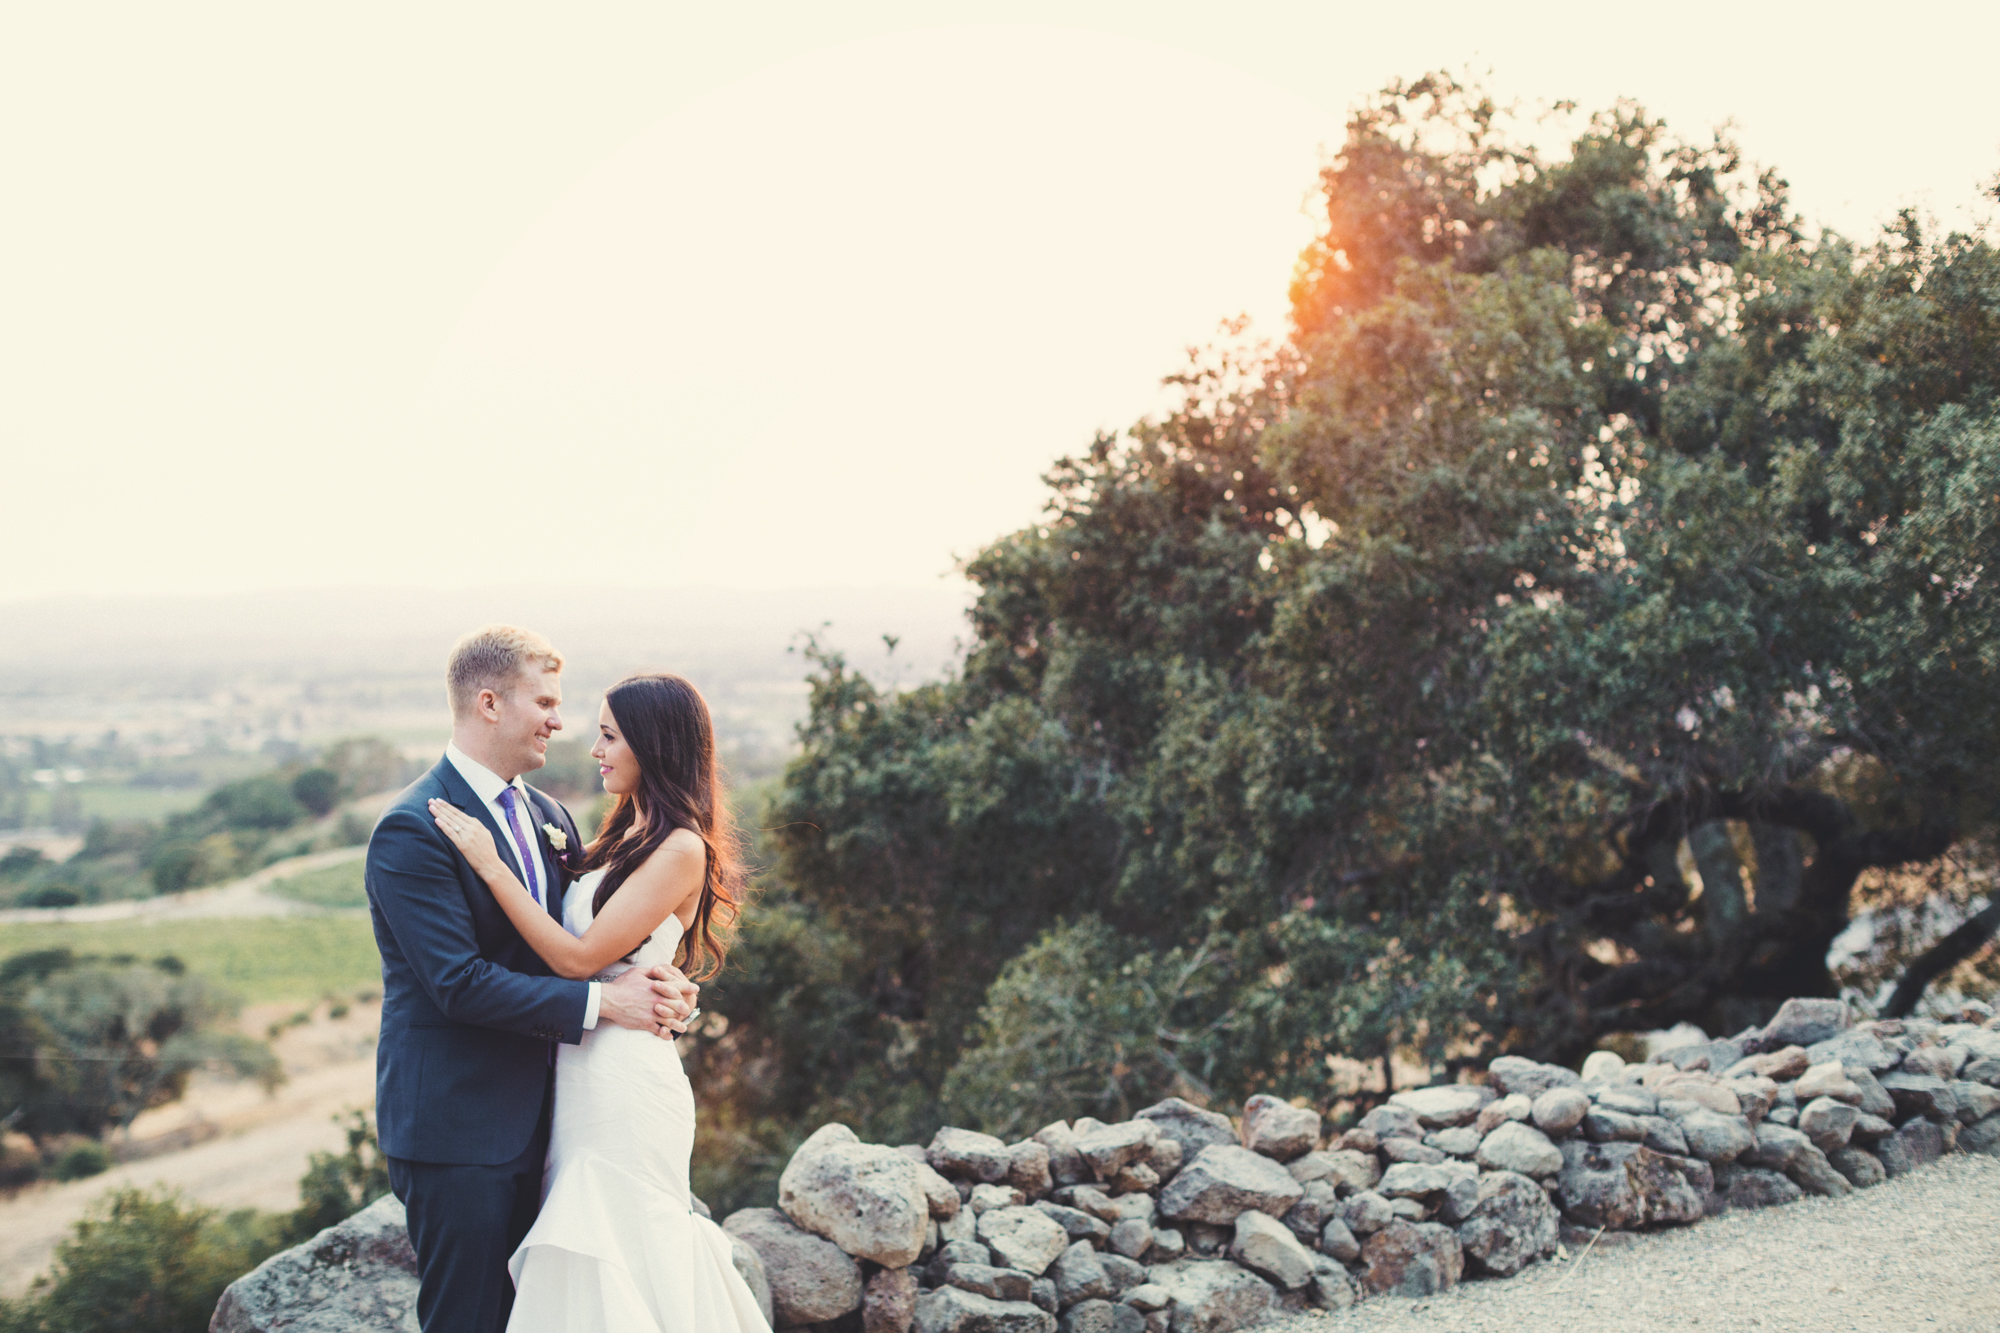 Paradise Ridge winery wedding @Anne-Claire Brun-0096